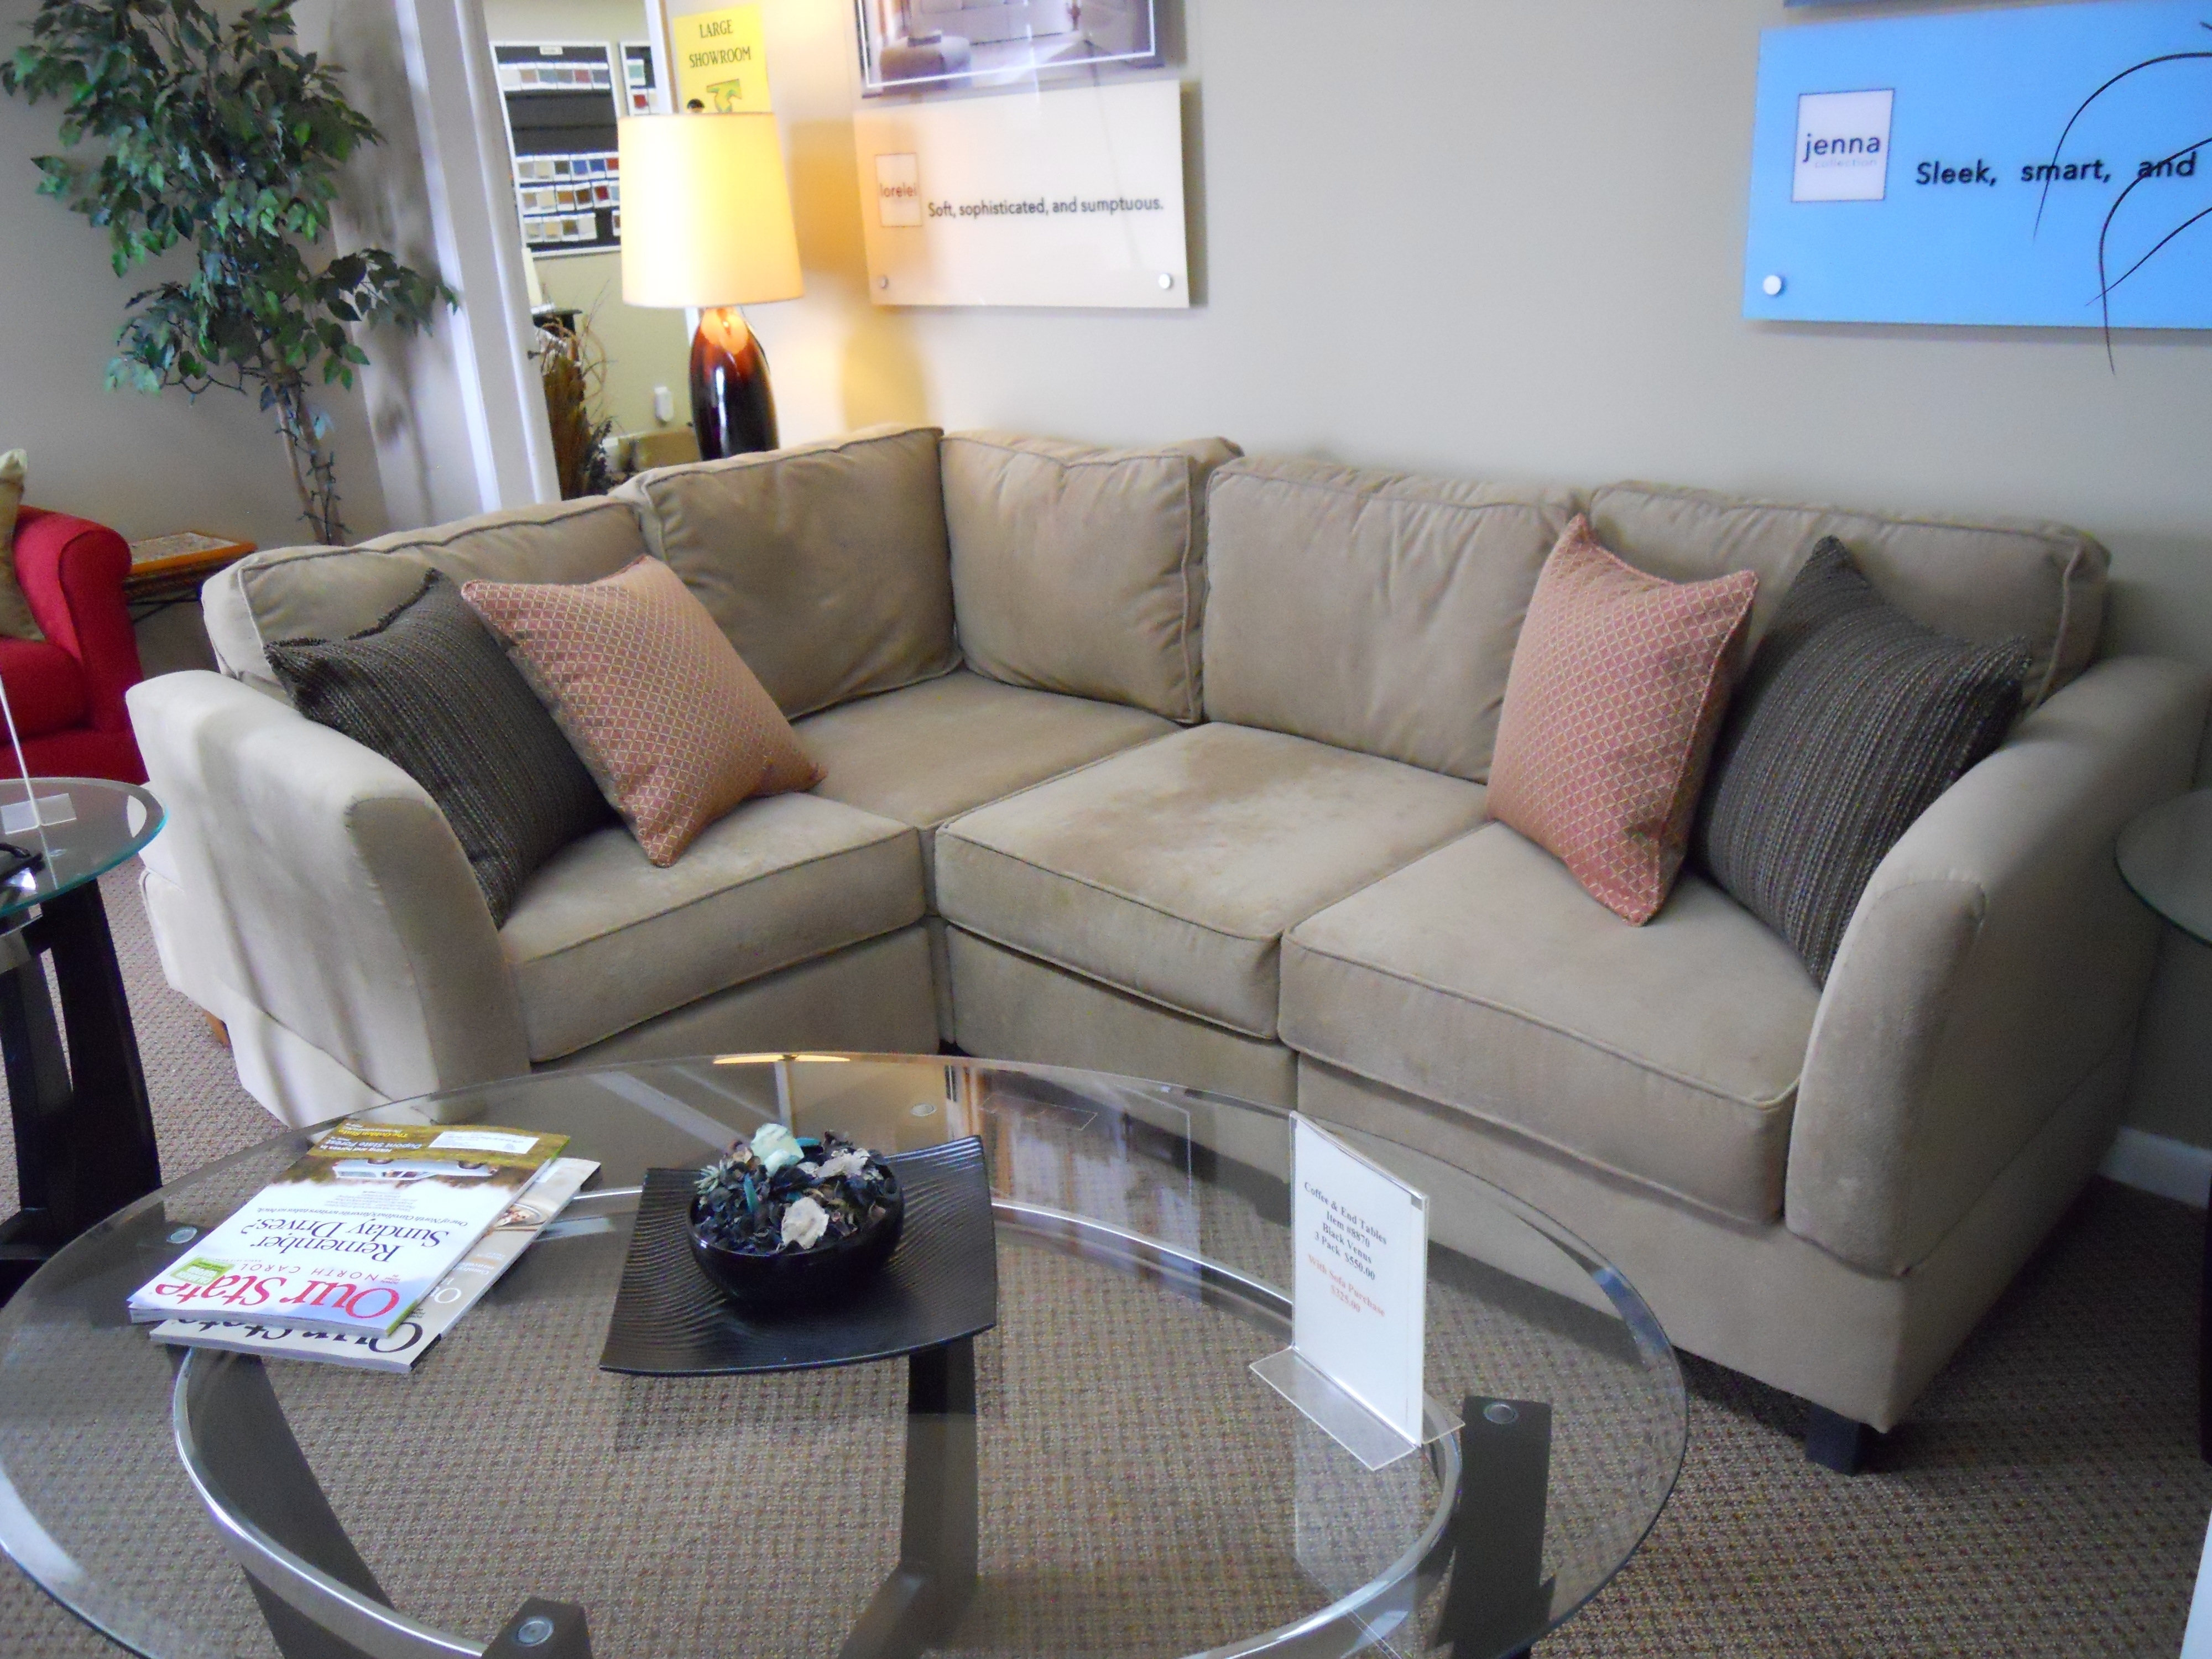 Condo Size Sectional Sofa Bed • Sofa Bed With Sectional Sofas For Condos (Image 5 of 10)